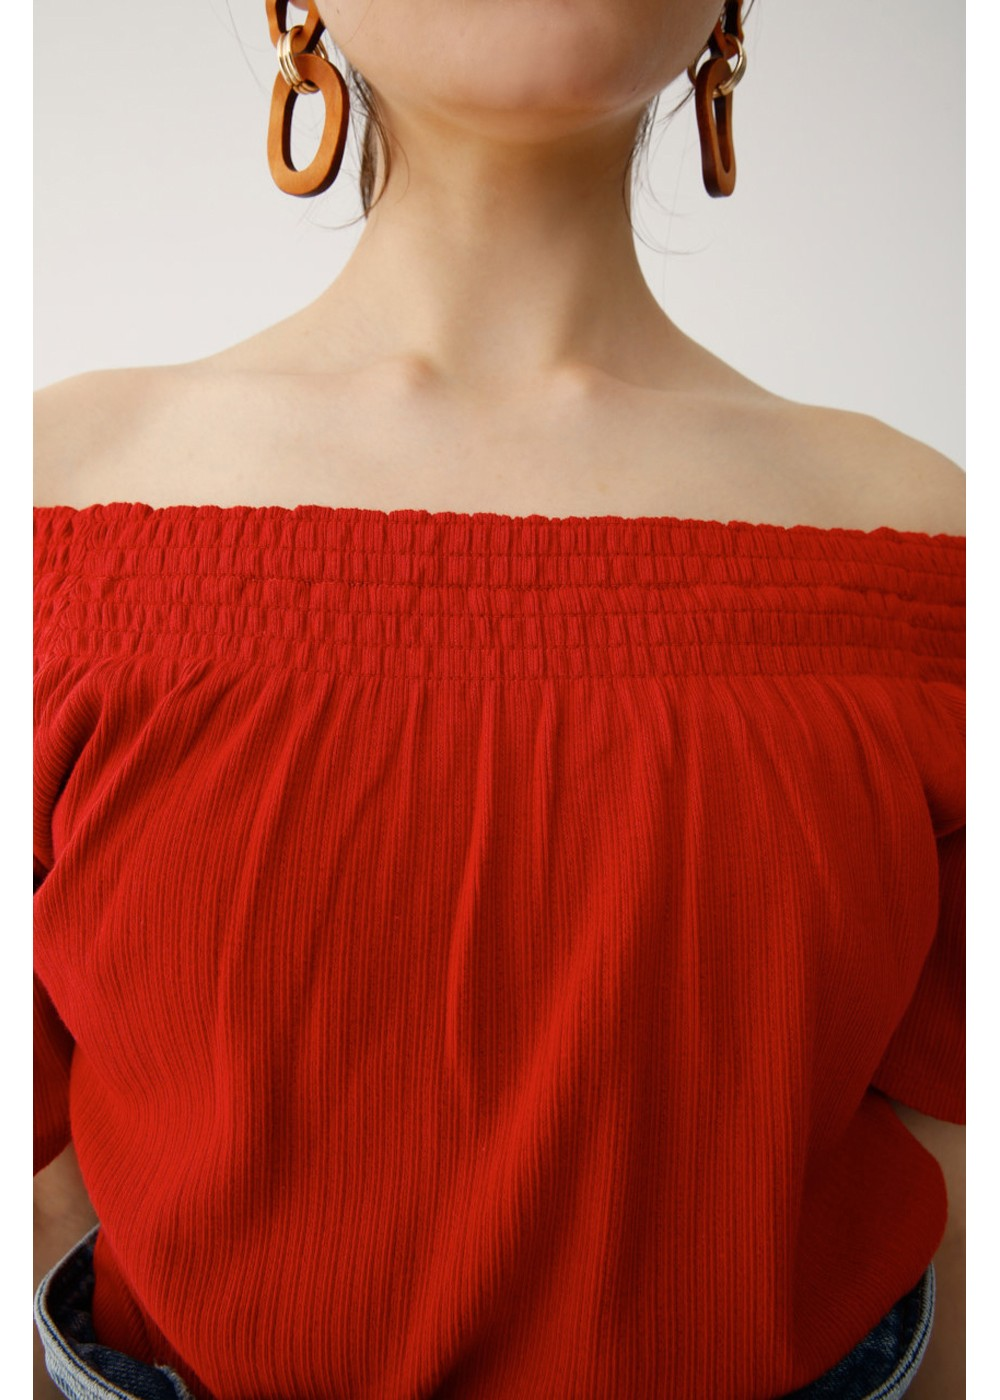 【最大70%OFF】RIB STITCH OFF SHOULDER TOP|RED|カットソー|MOUSSY